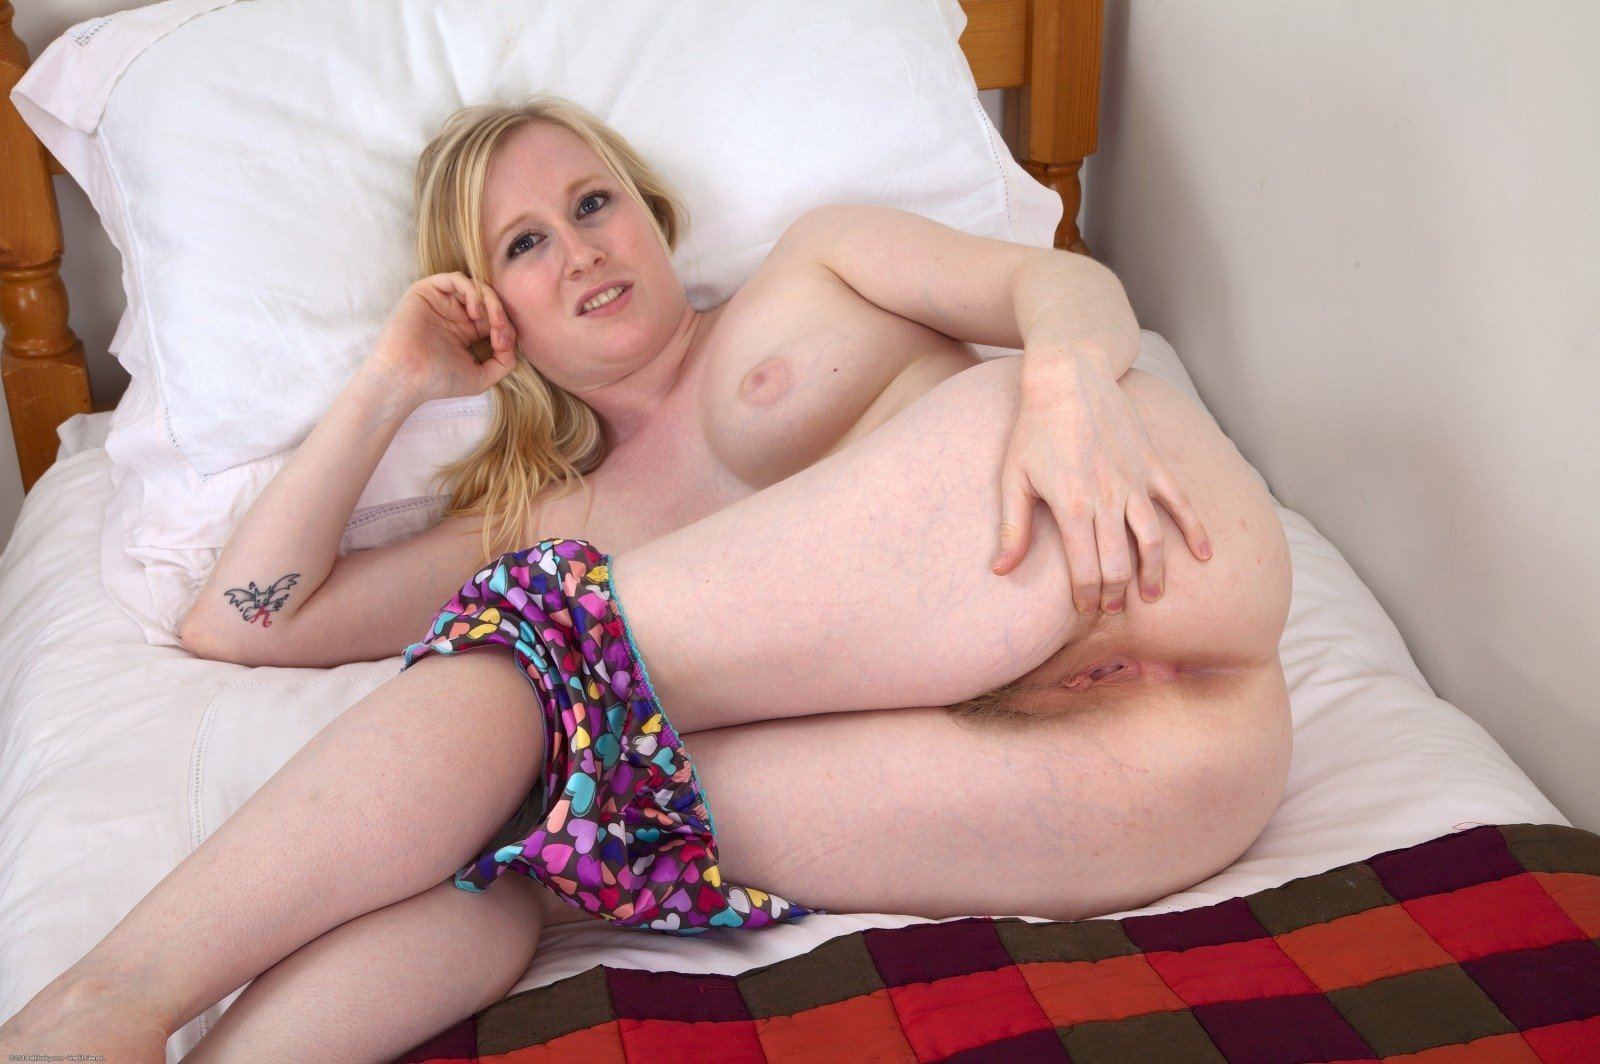 Free 1-1 nude webcam chats